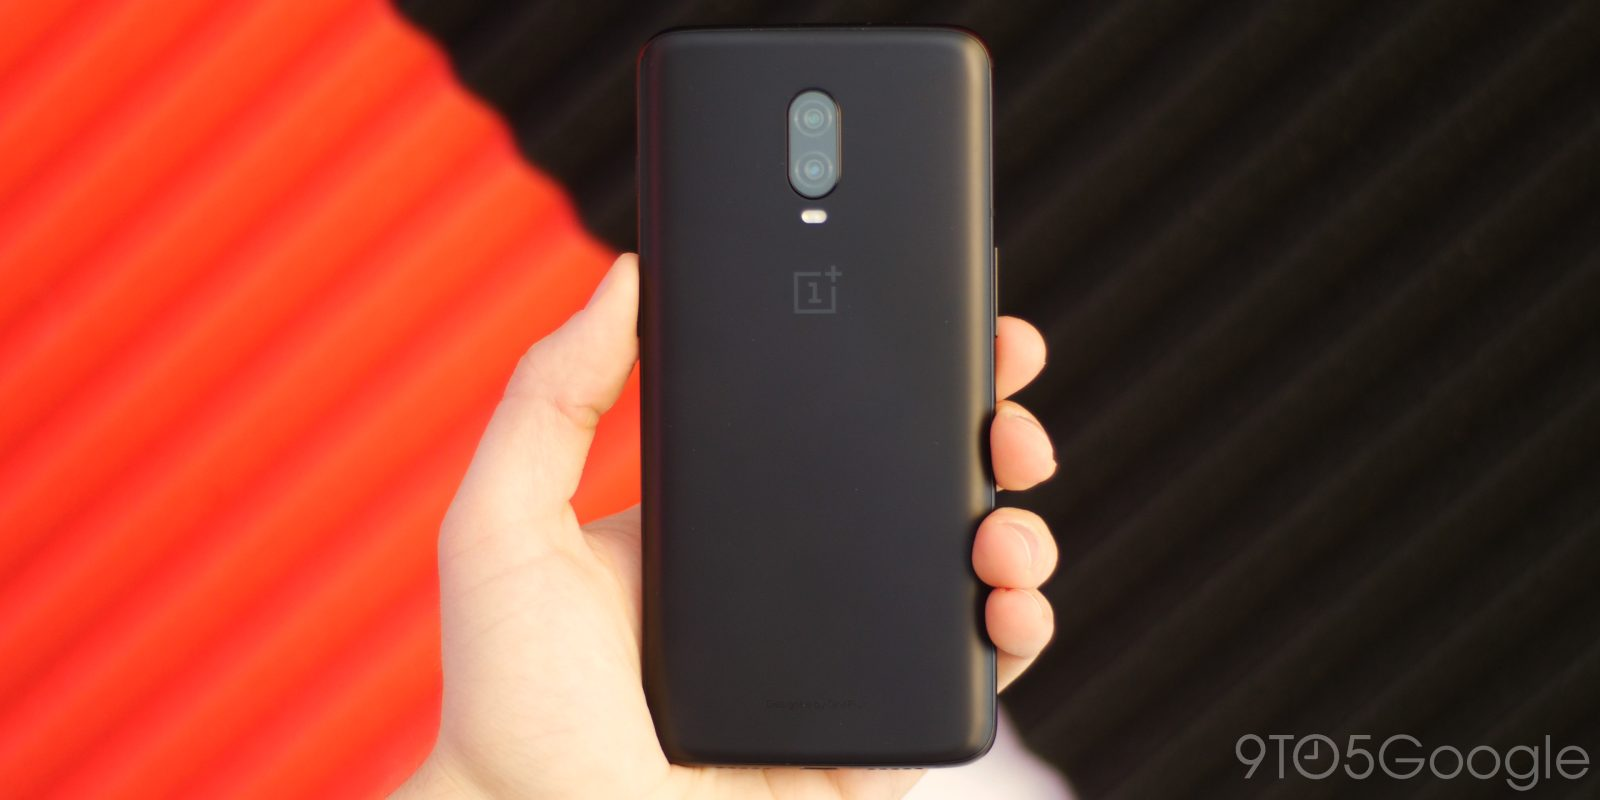 OnePlus 6T re-review: 6 months later and still top-tier